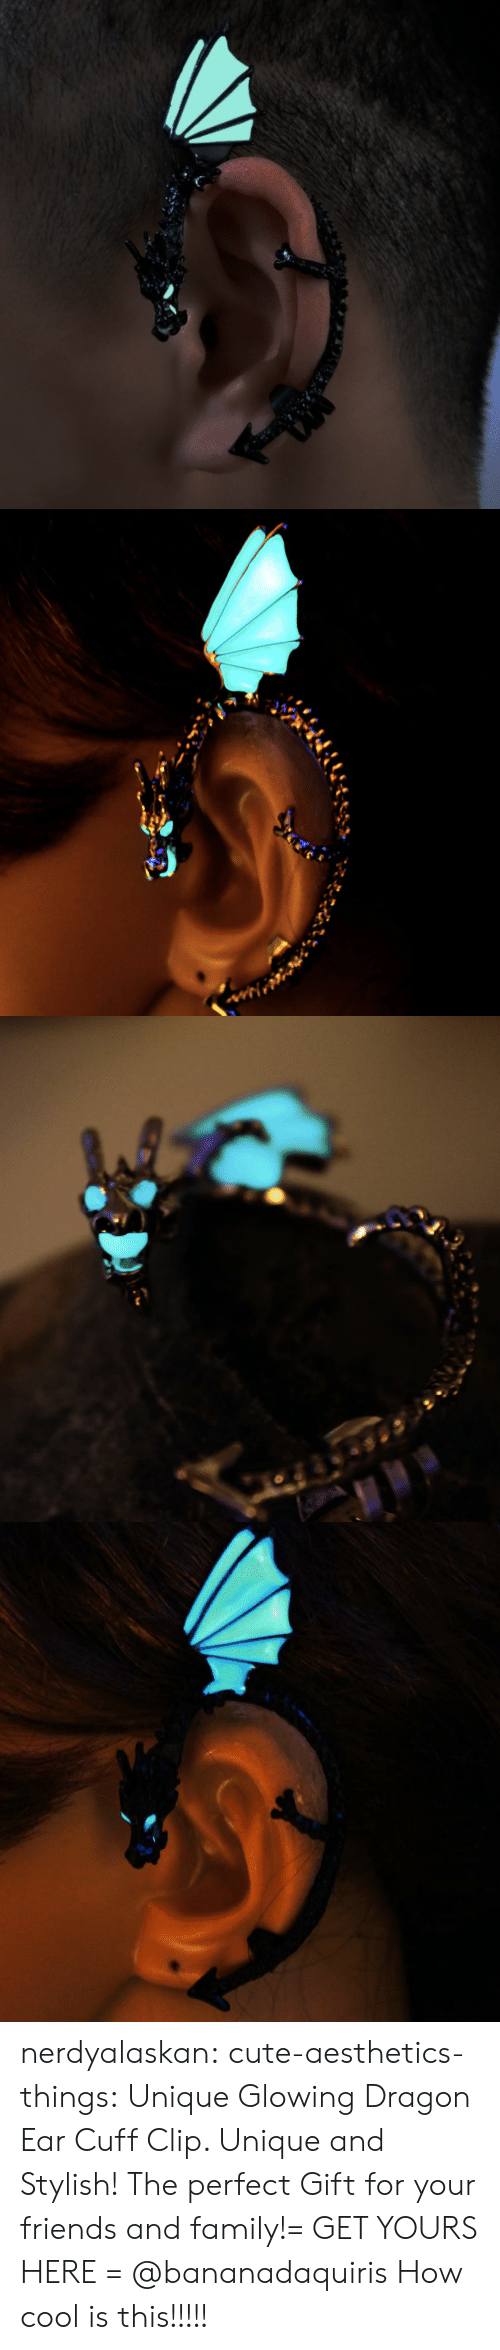 Stylish: nerdyalaskan:  cute-aesthetics-things:  Unique Glowing Dragon Ear Cuff Clip. Unique and Stylish! The perfect Gift for your friends and family!= GET YOURS HERE =  @bananadaquiris  How cool is this!!!!!